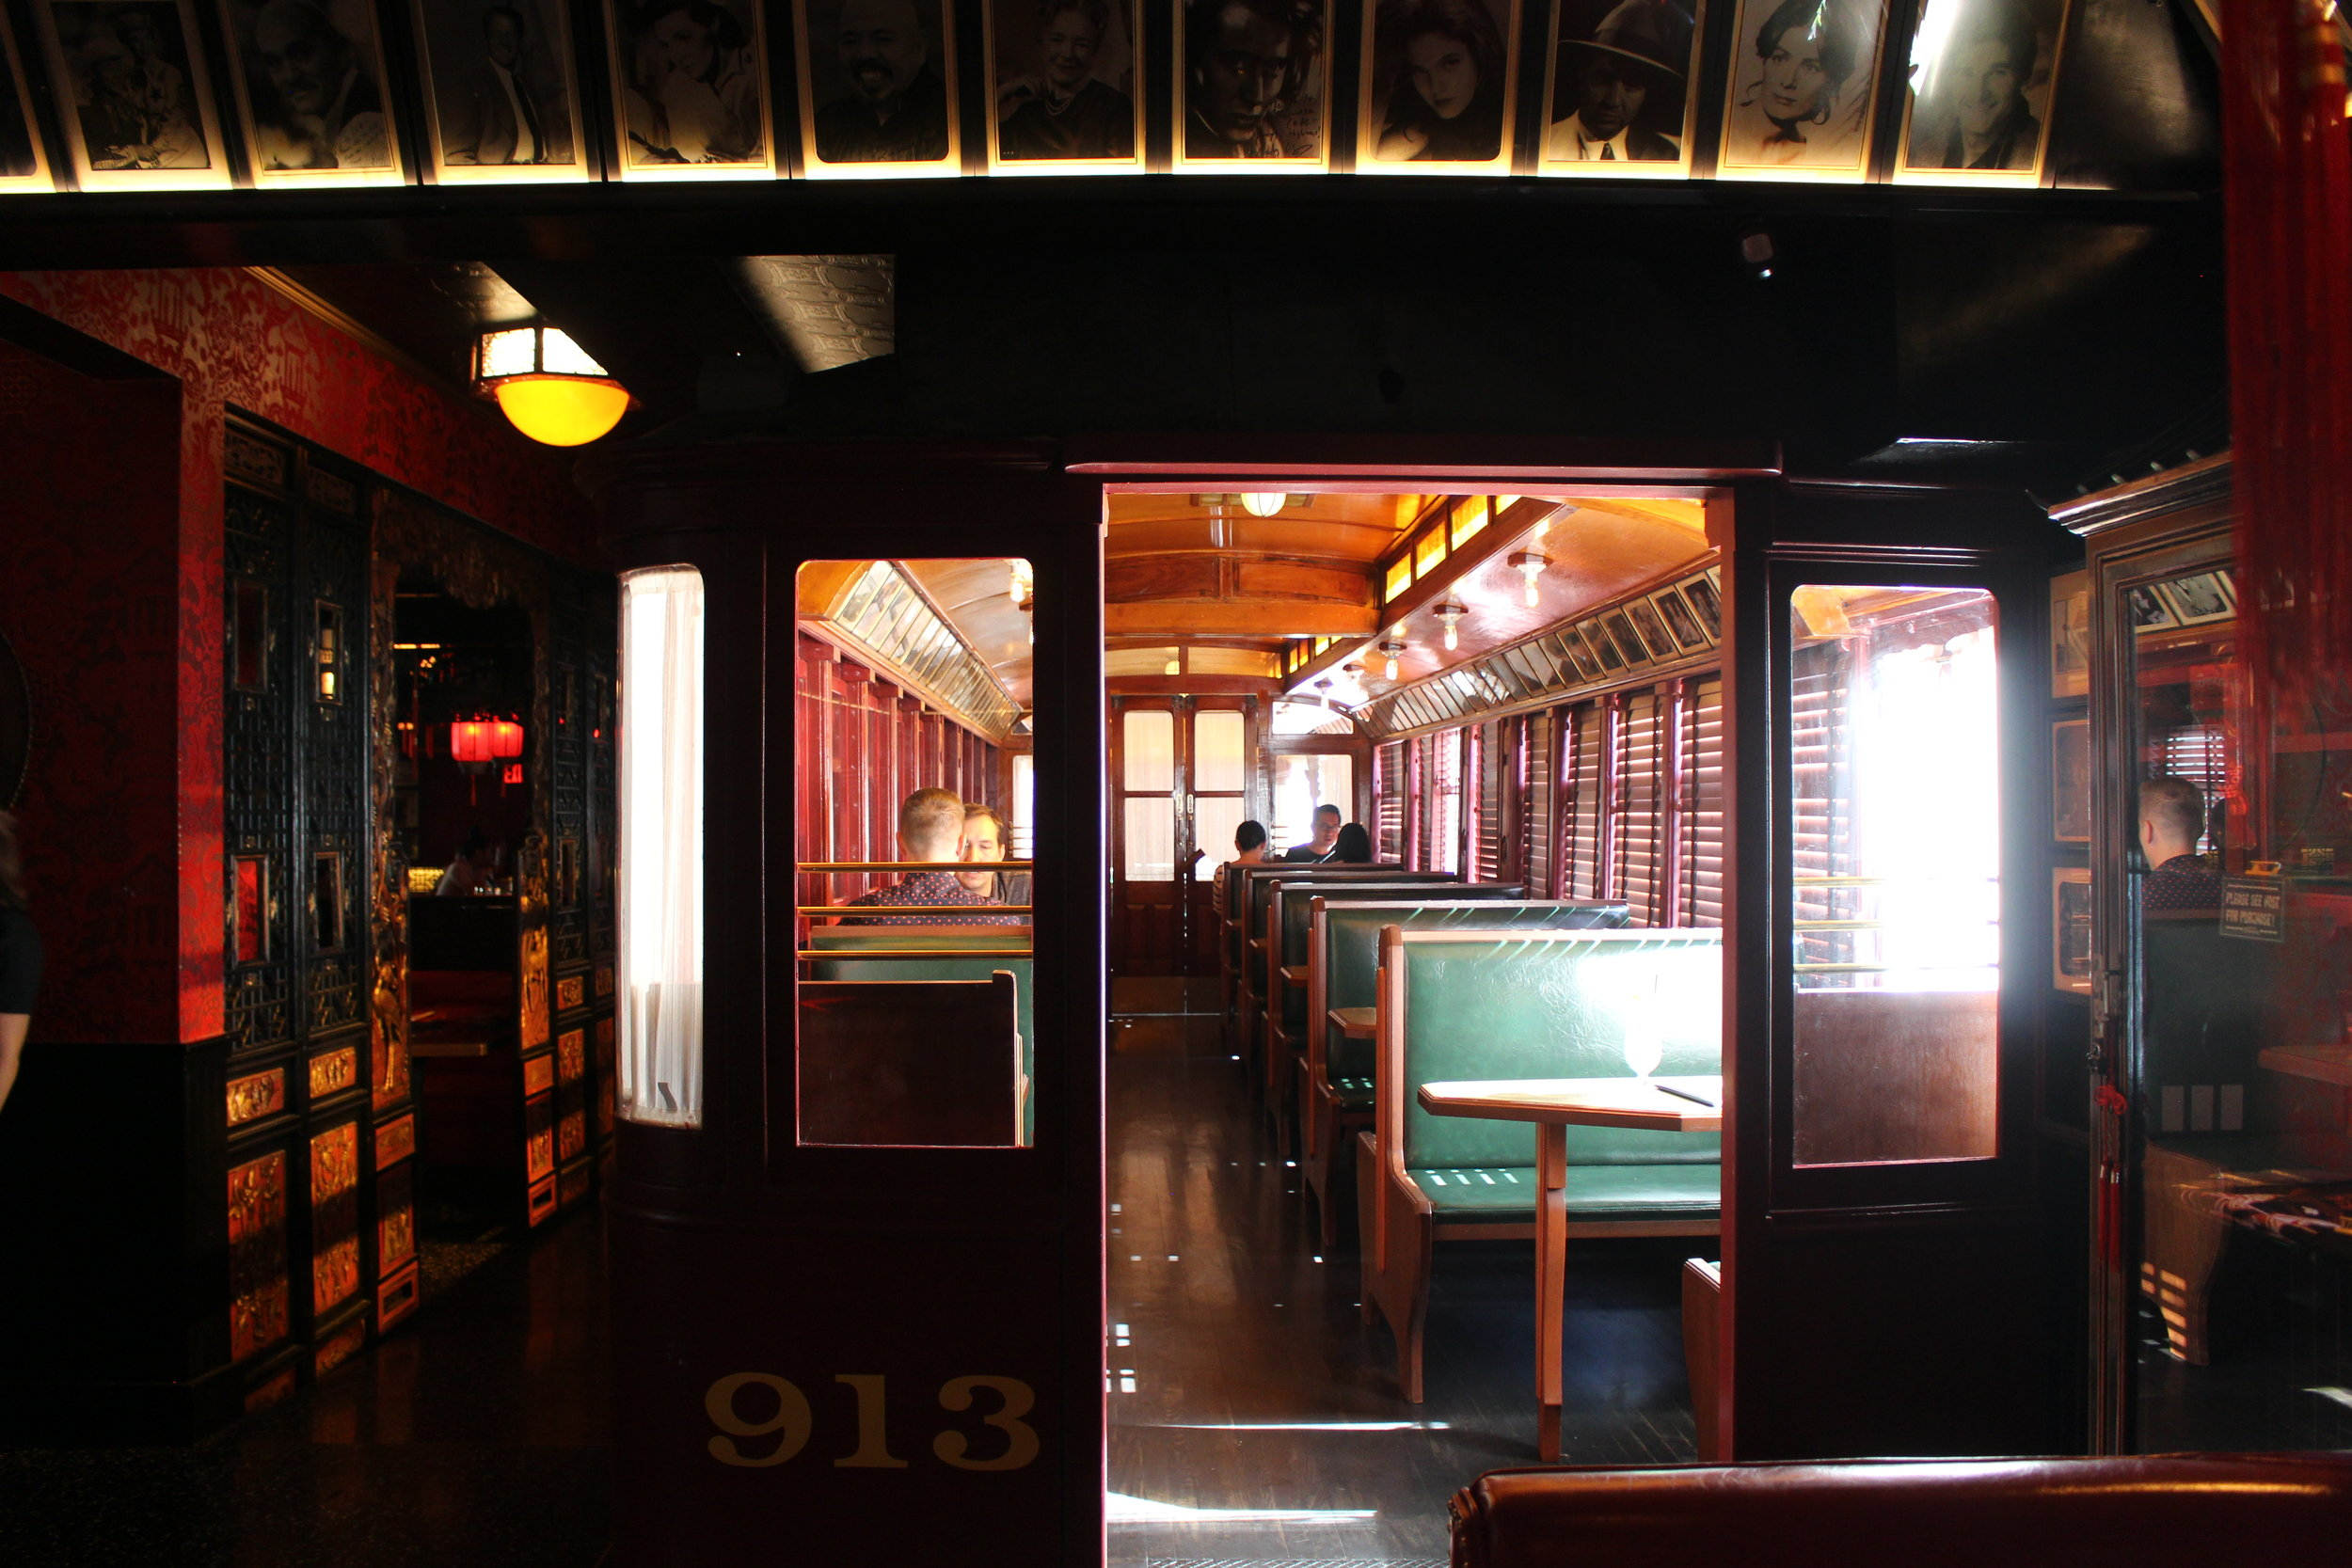 The 1904 train car dining room is still amazing